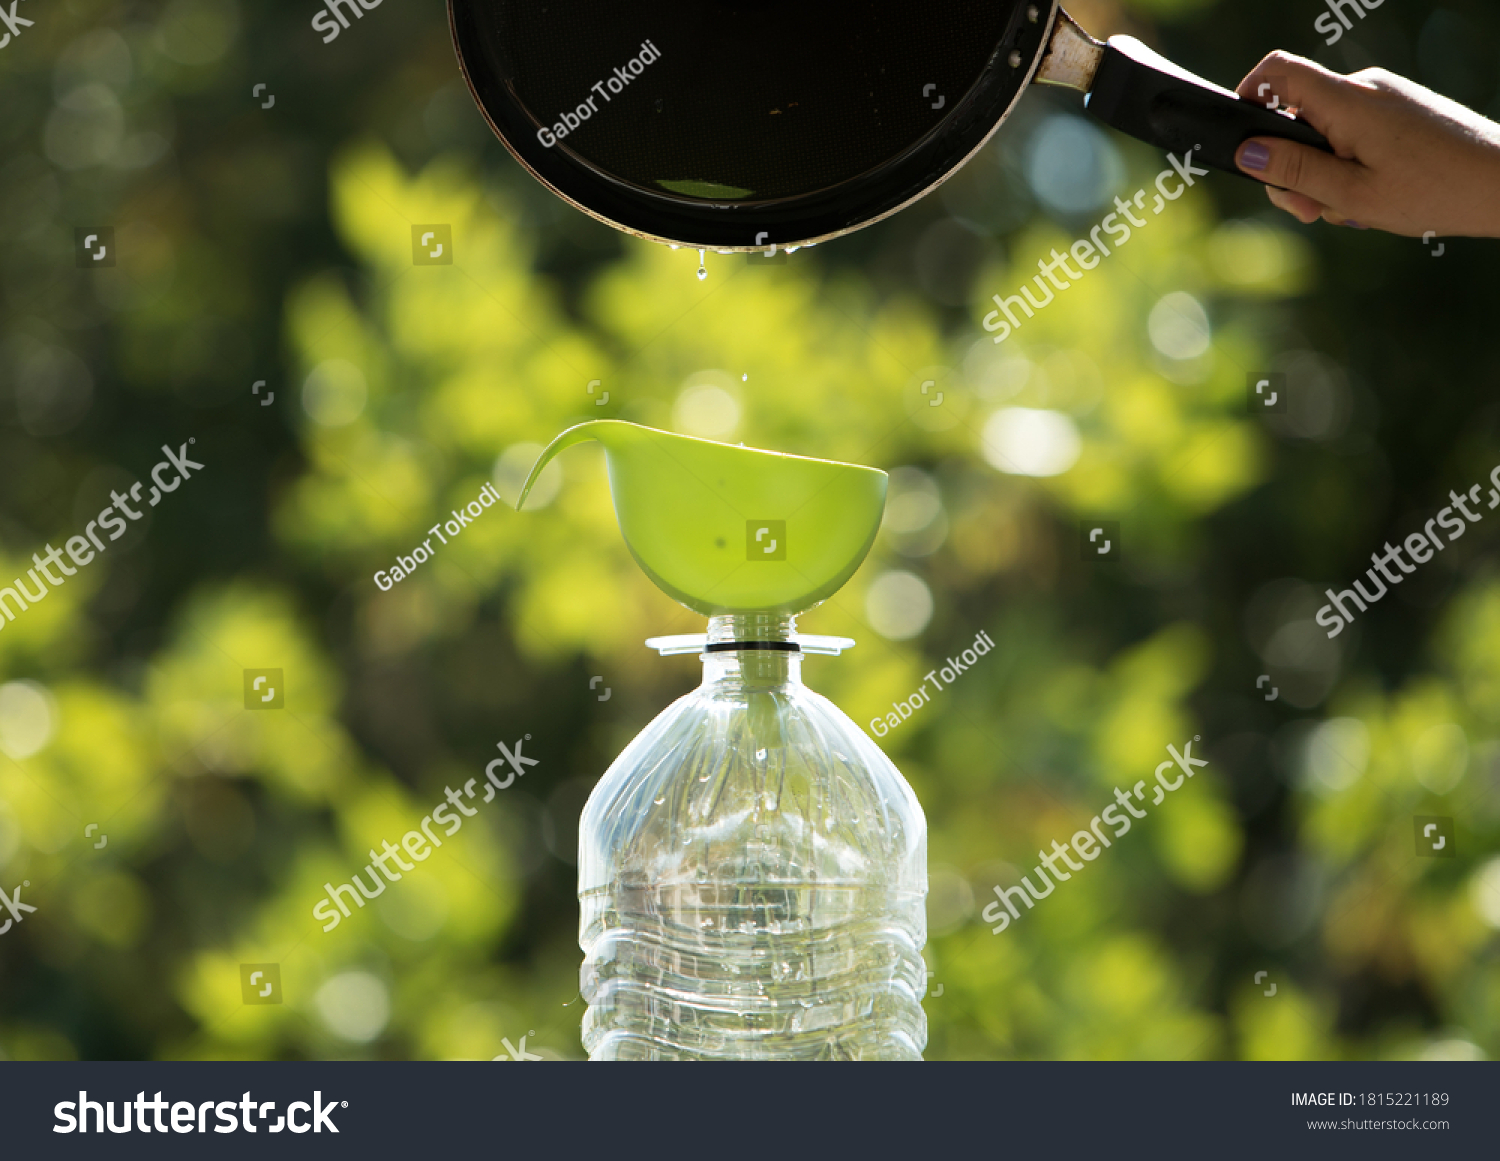 Collection and recycling of used household edible oil. #1815221189